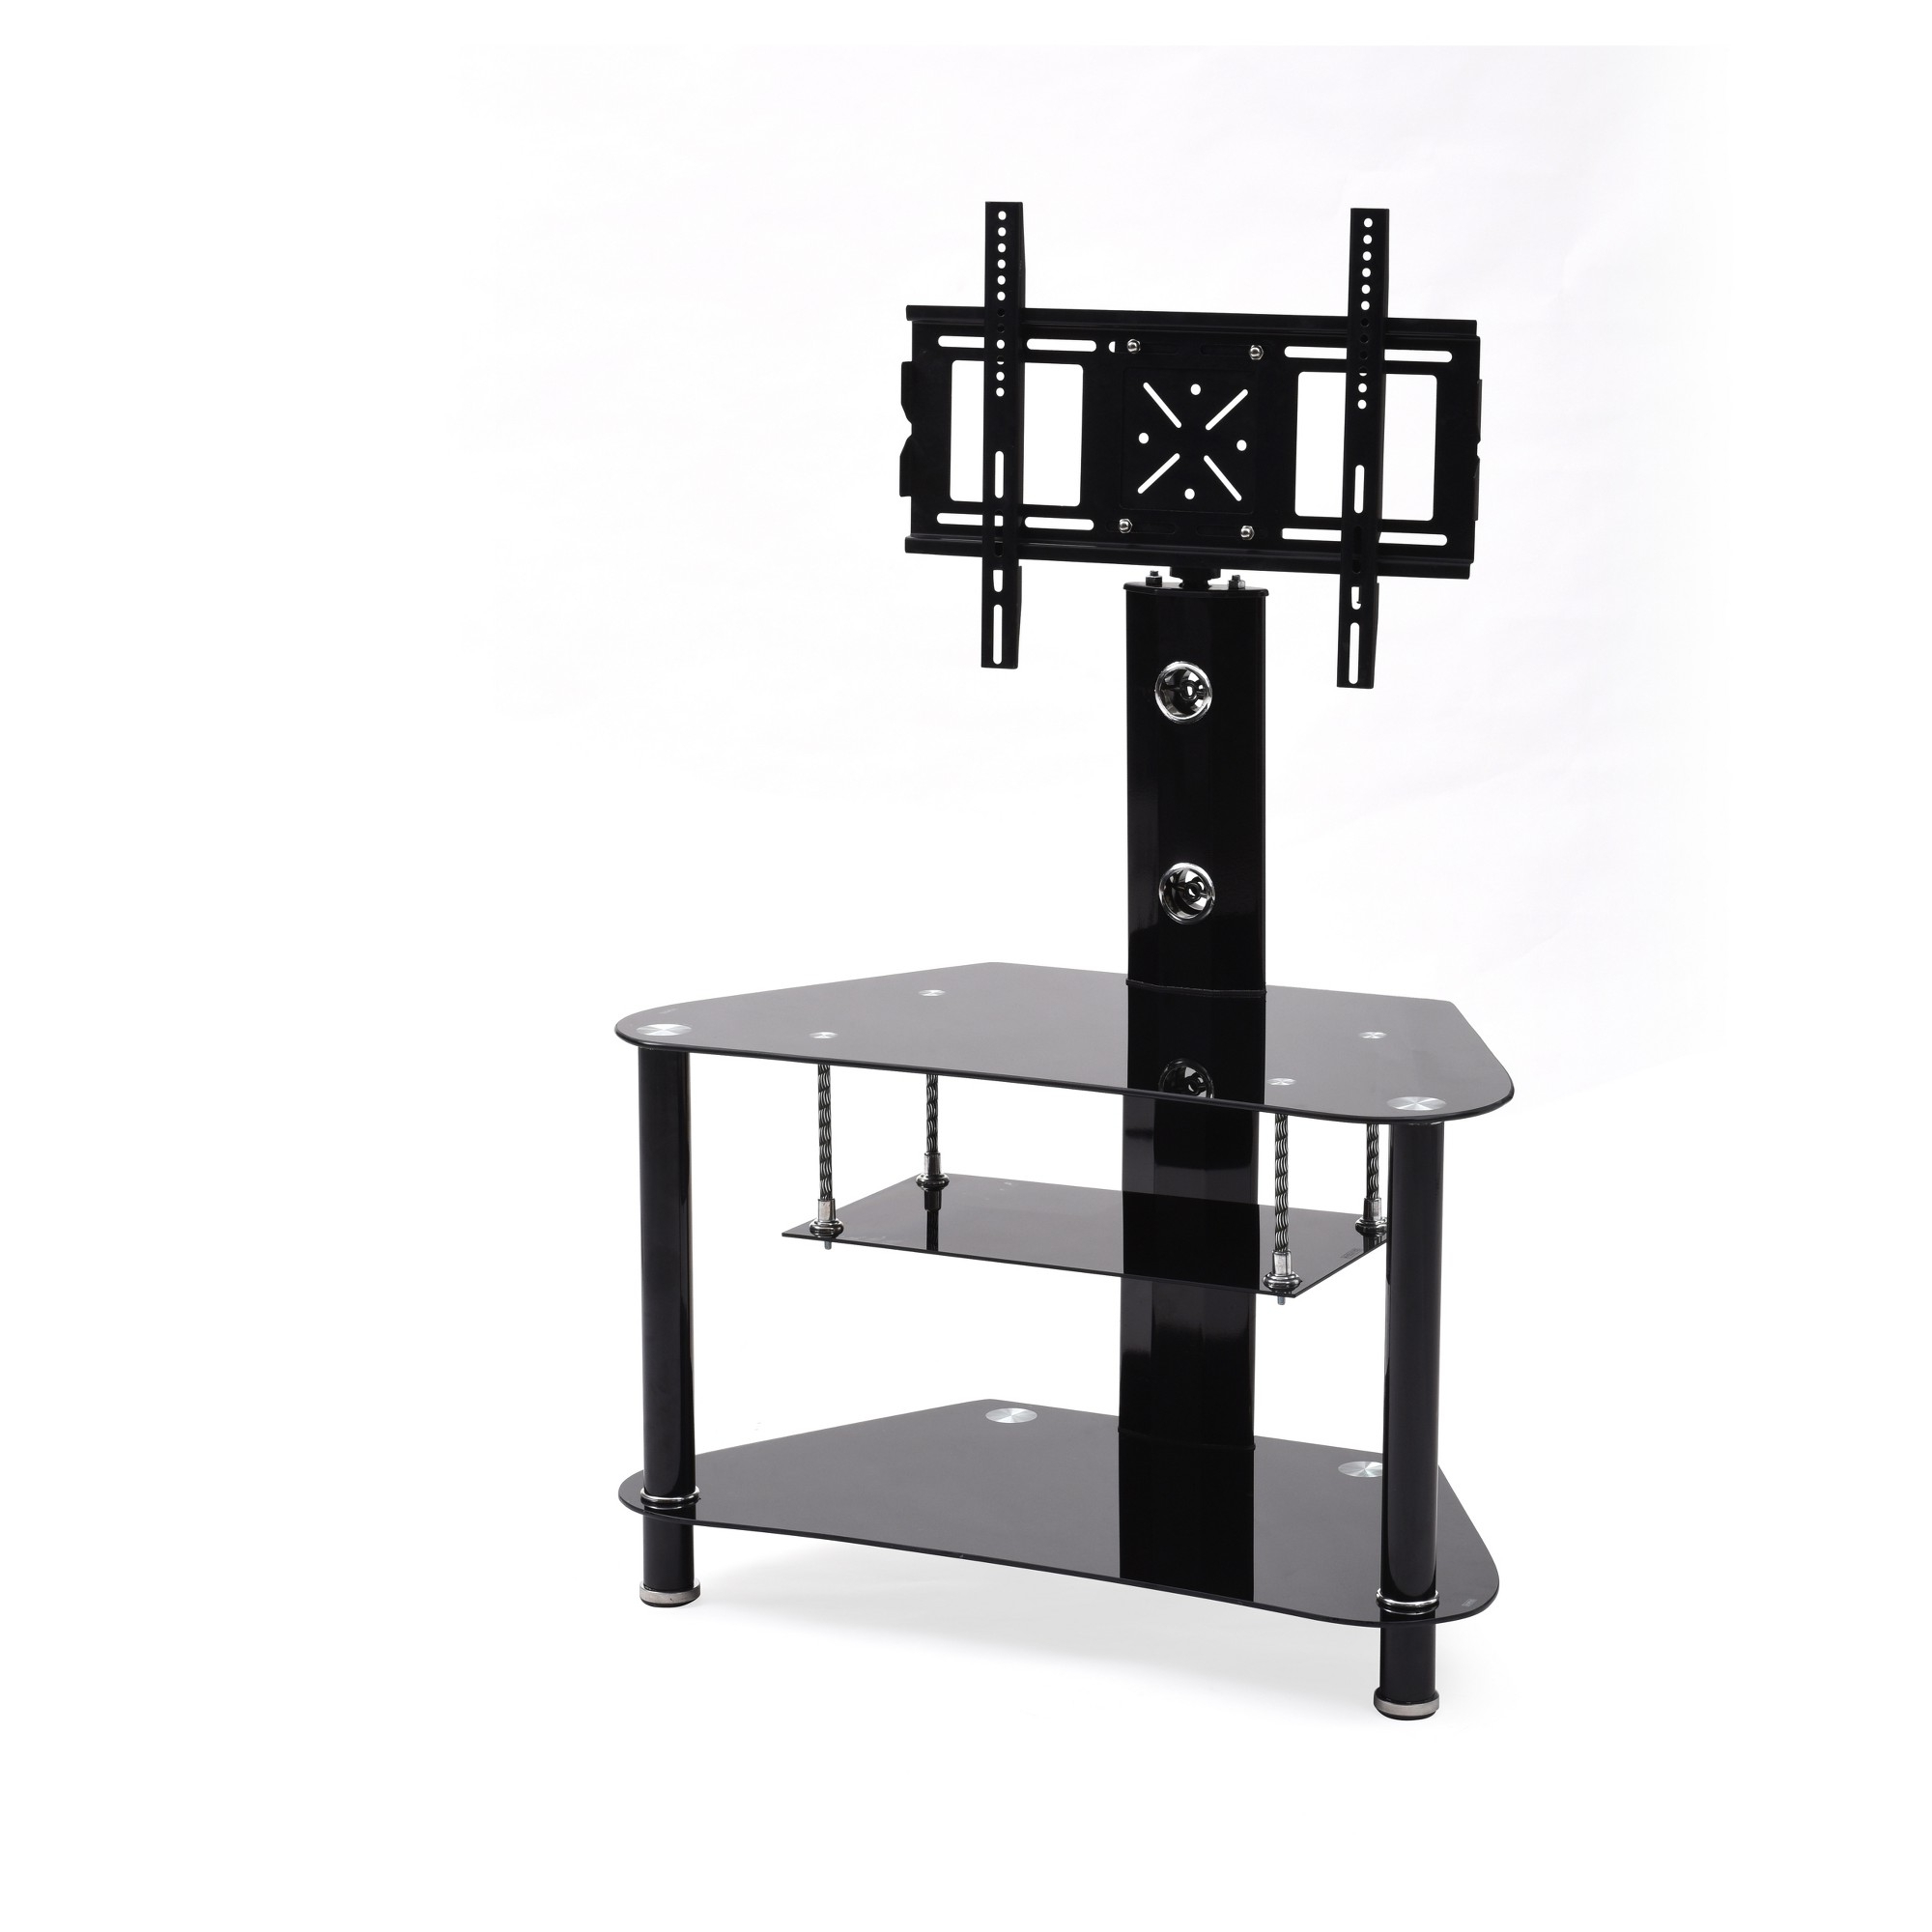 Swivel Black Glass Tv Stands Throughout Preferred 3 Shelf Glass Tv Stand With Swiveling Mount Black 36 – Hodedah (Gallery 10 of 20)